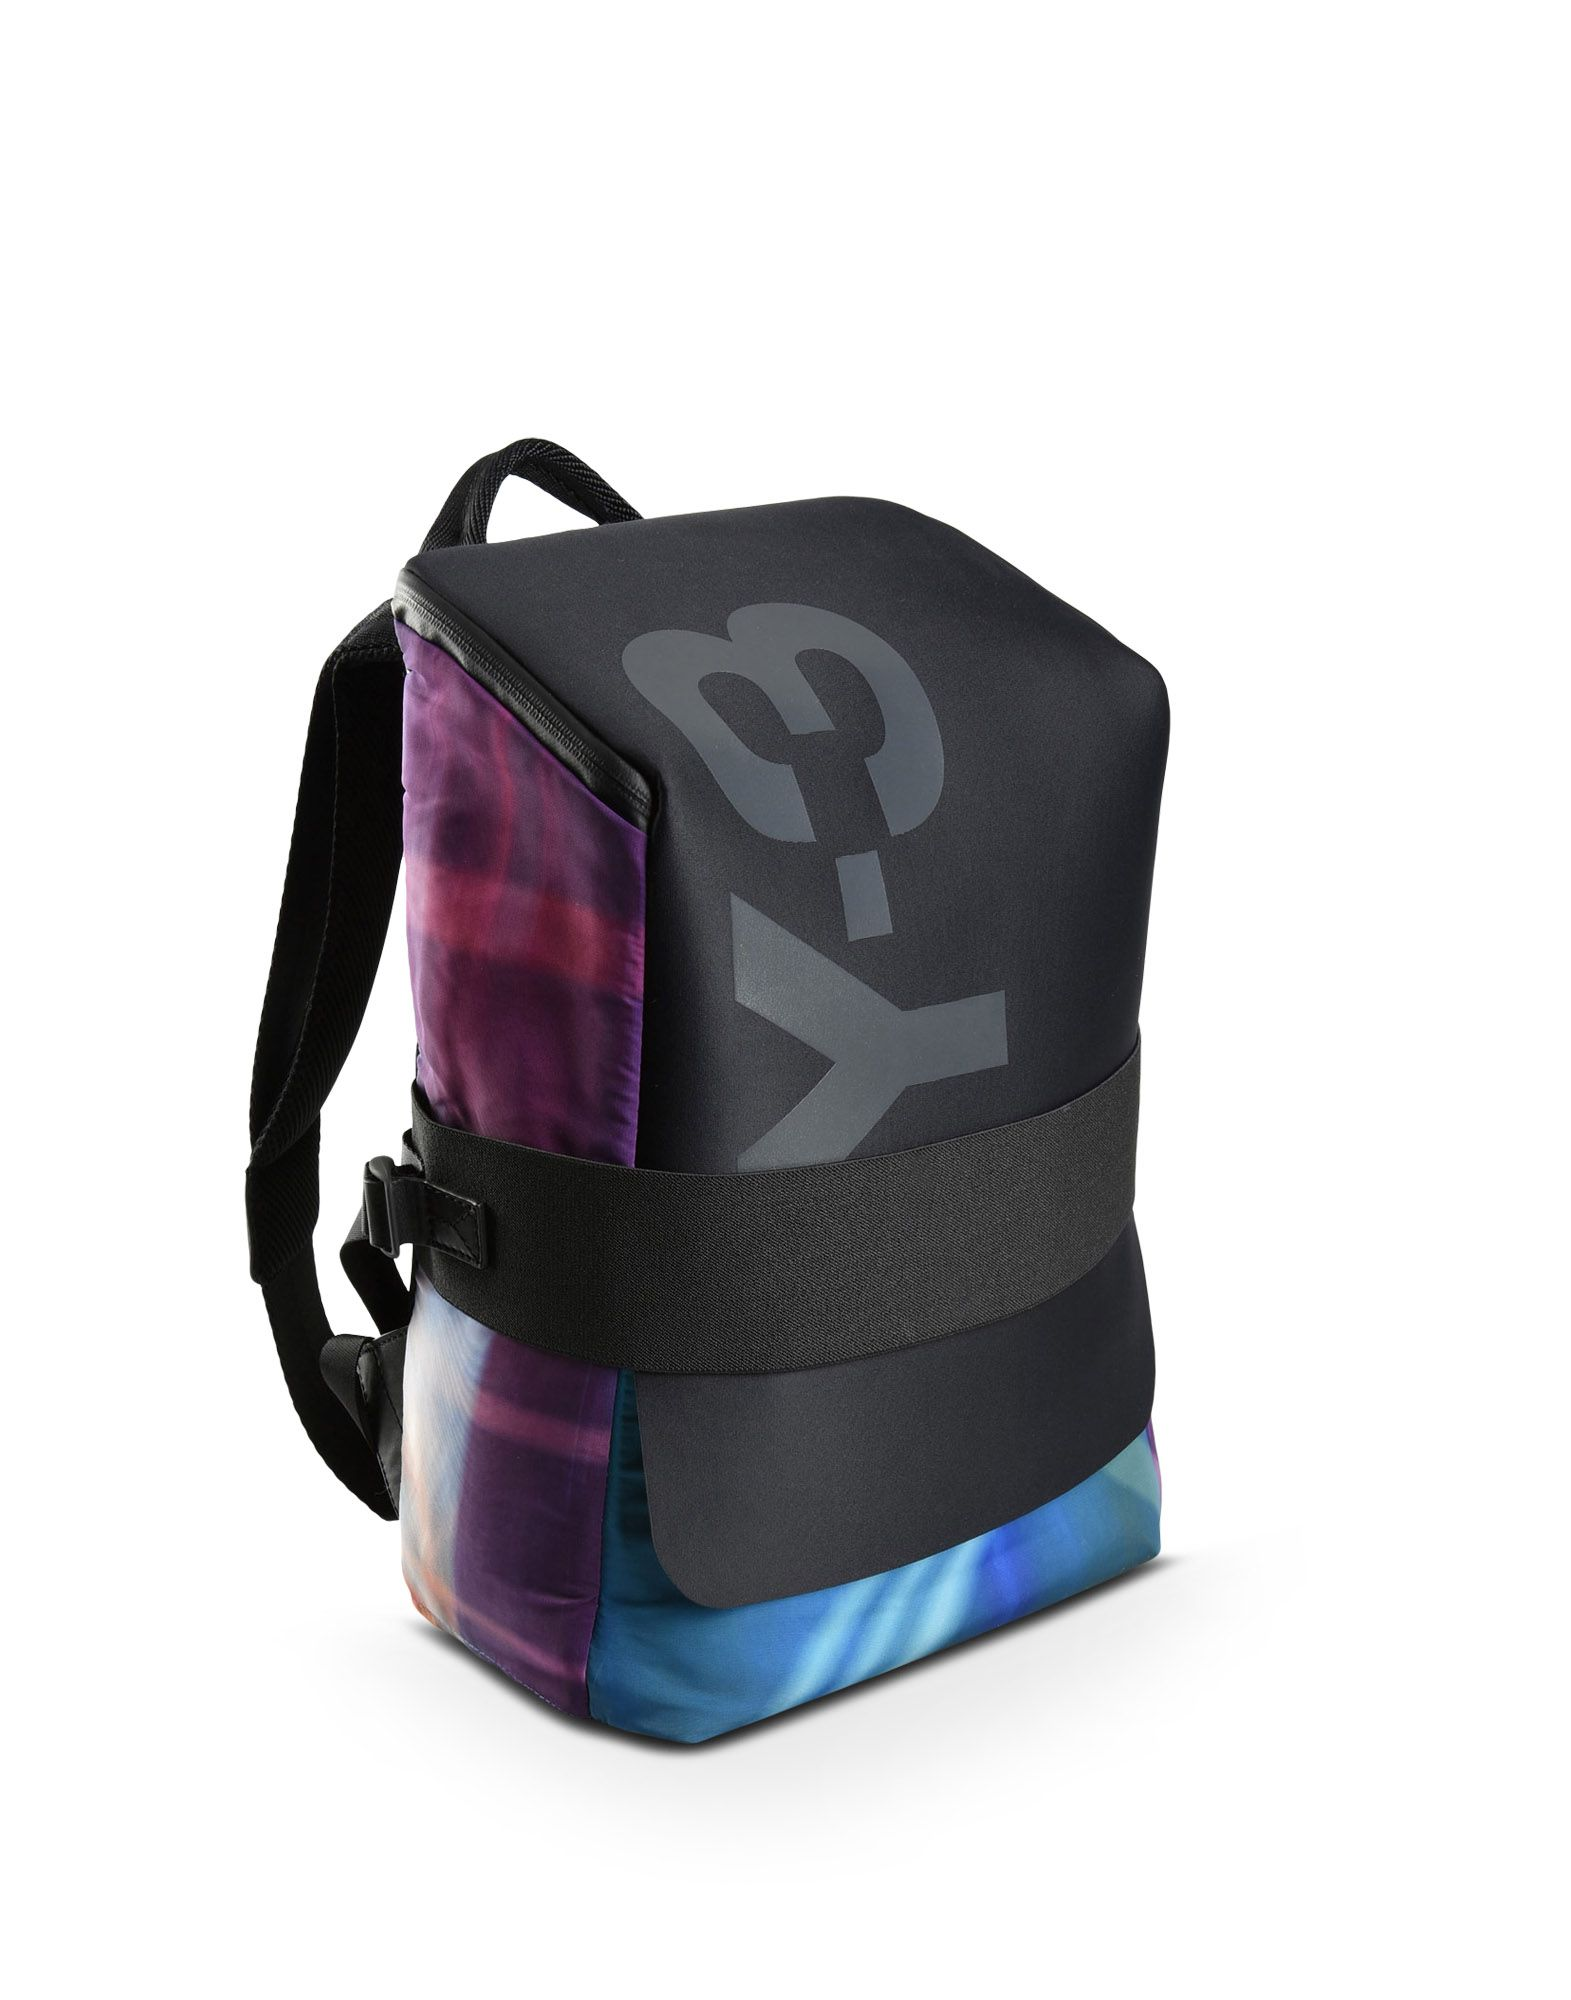 Y-3 QASA BACKPACK SMALL BAGS unisex Y-3 adidas